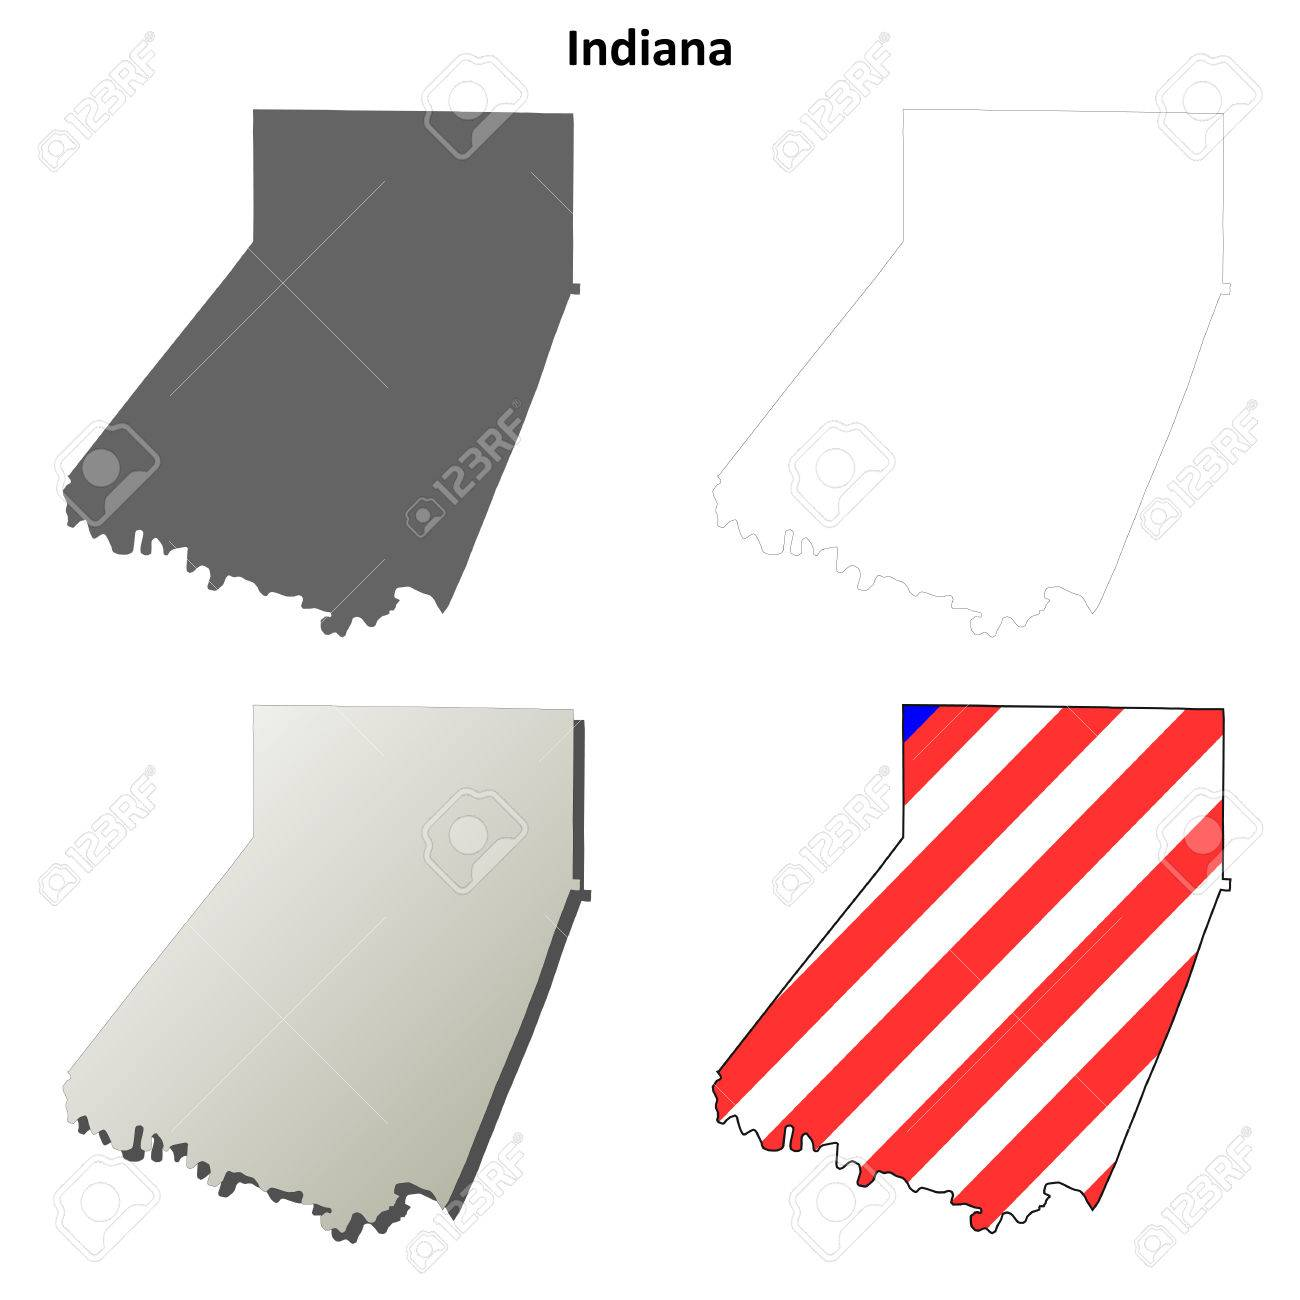 Image of: Indiana County Pennsylvania Blank Outline Map Set Royalty Free Cliparts Vectors And Stock Illustration Image 56393523